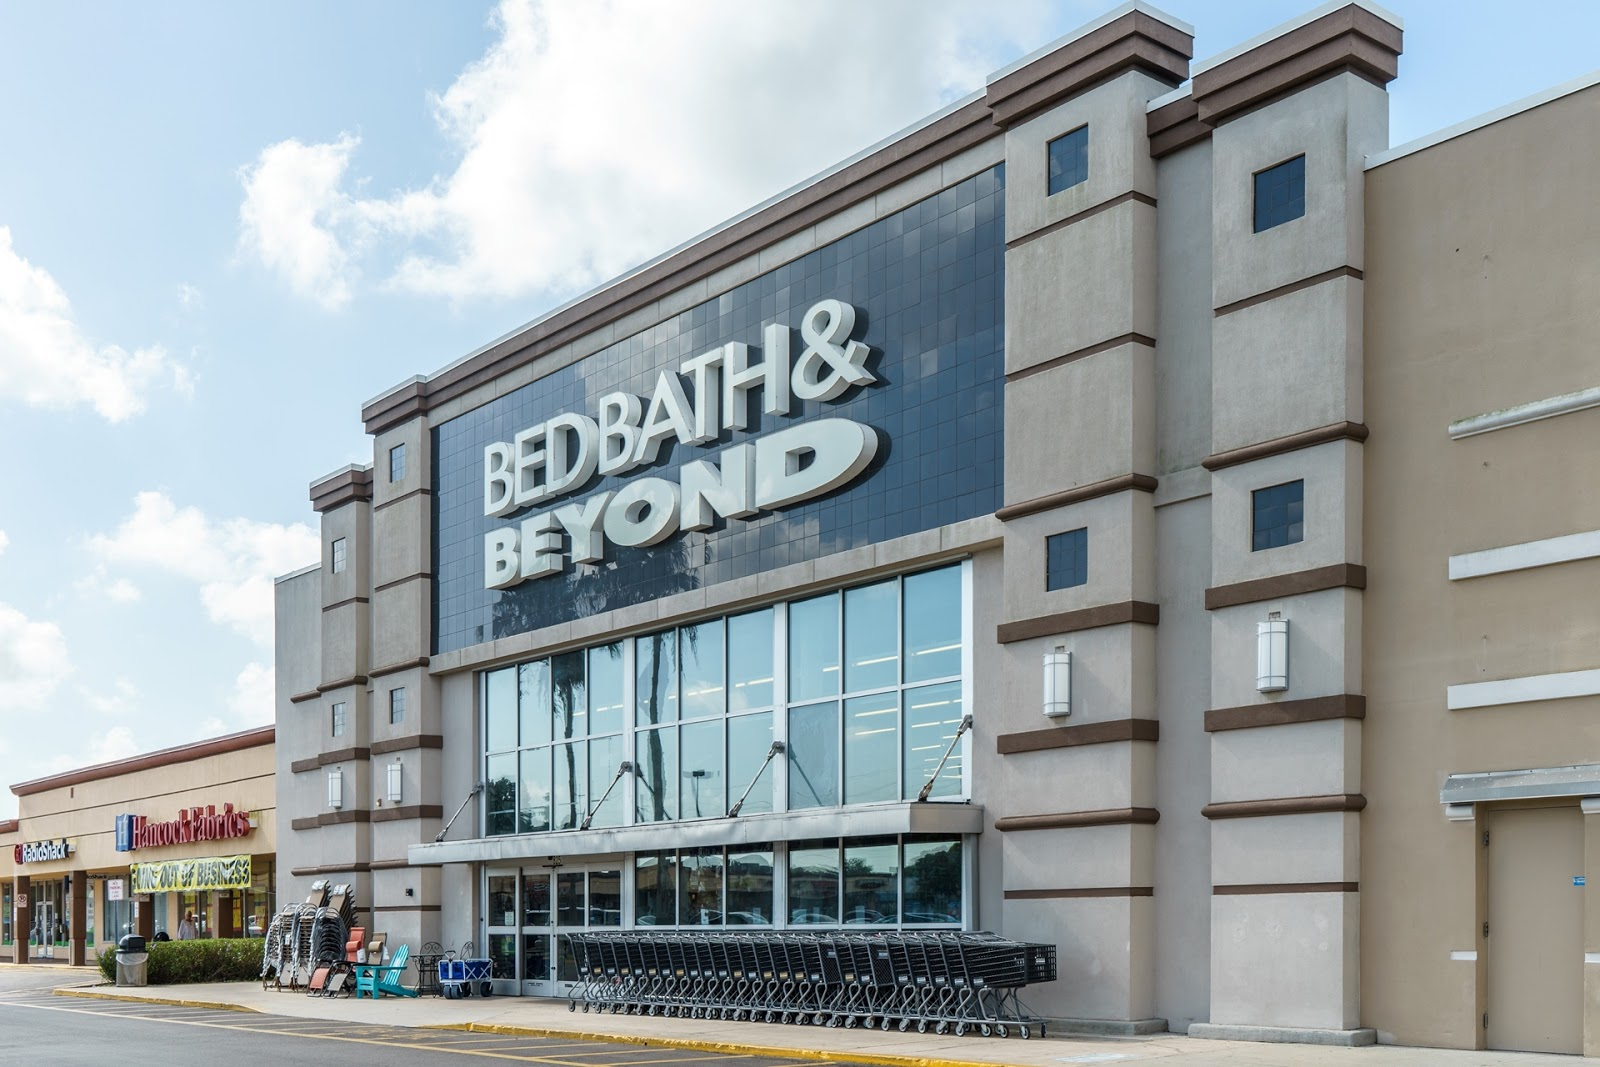 Bed bath and beyond lakewood - Bed Bath Beyond Operates A 25 000 Square Foot Store In The Cortez East Strip Center The Space Was Once Part Of A Woolco Discount Mart